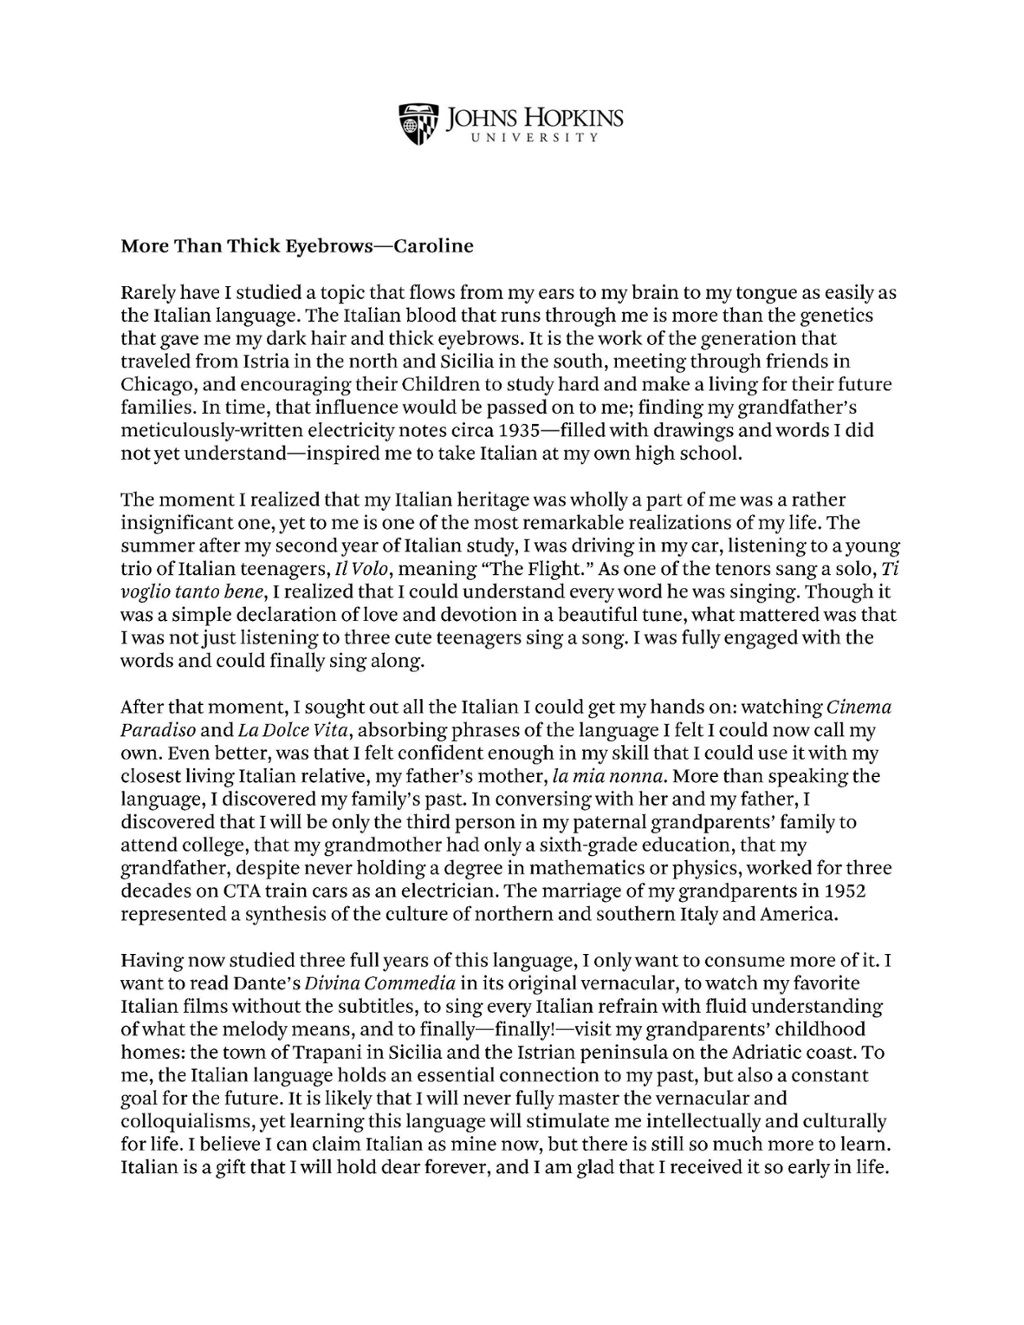 Full Size of College Admissions Essay Format Sample Plagiarism Cause And Effect Nhs Photo Ideas One